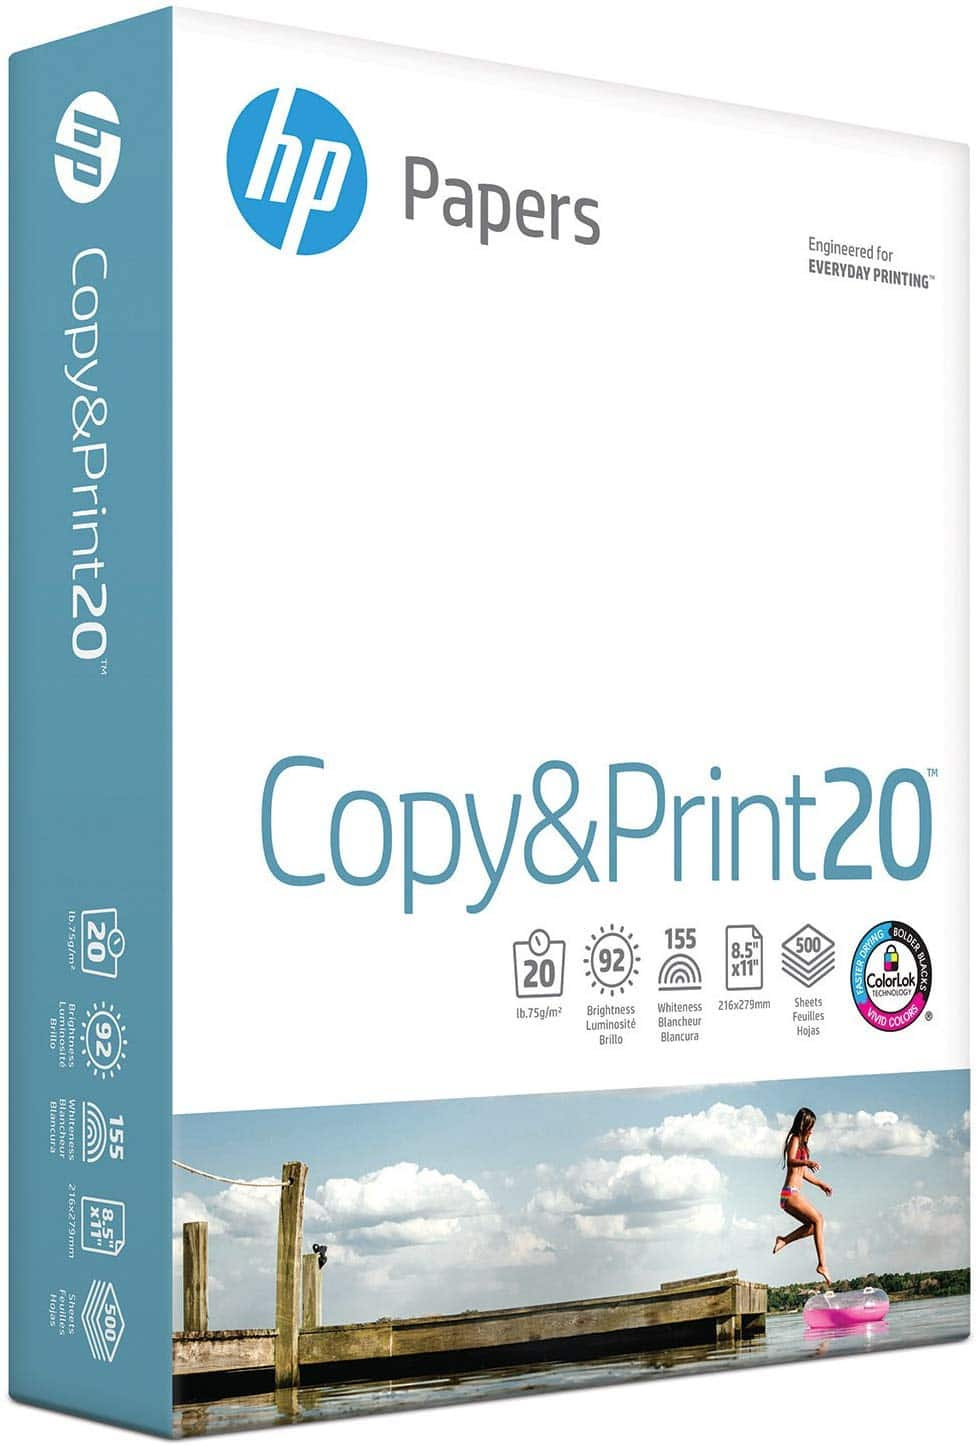 HP Printer Paper Copy&Print 20lb, 8.5 x 11, 1 Ream, 500 Total Sheets, Made in USA with 63% OFF $4.47